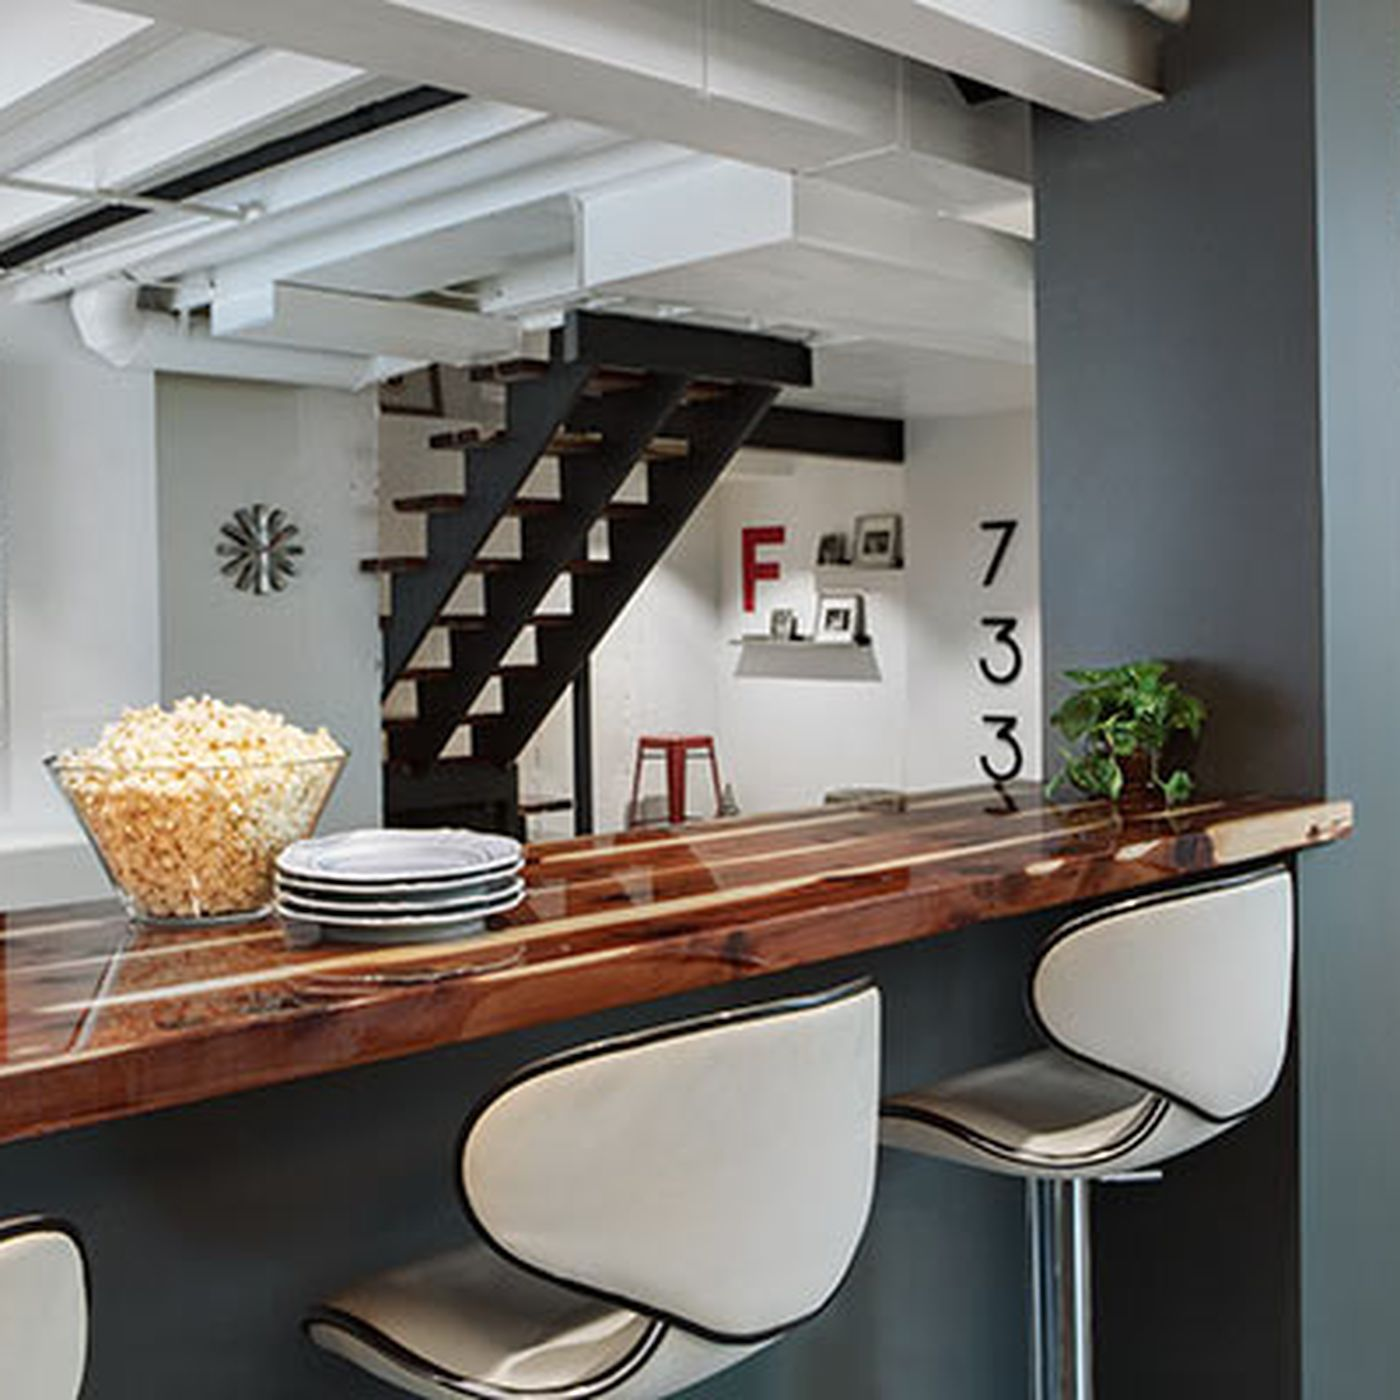 How To Build A Basement Bar This Old House